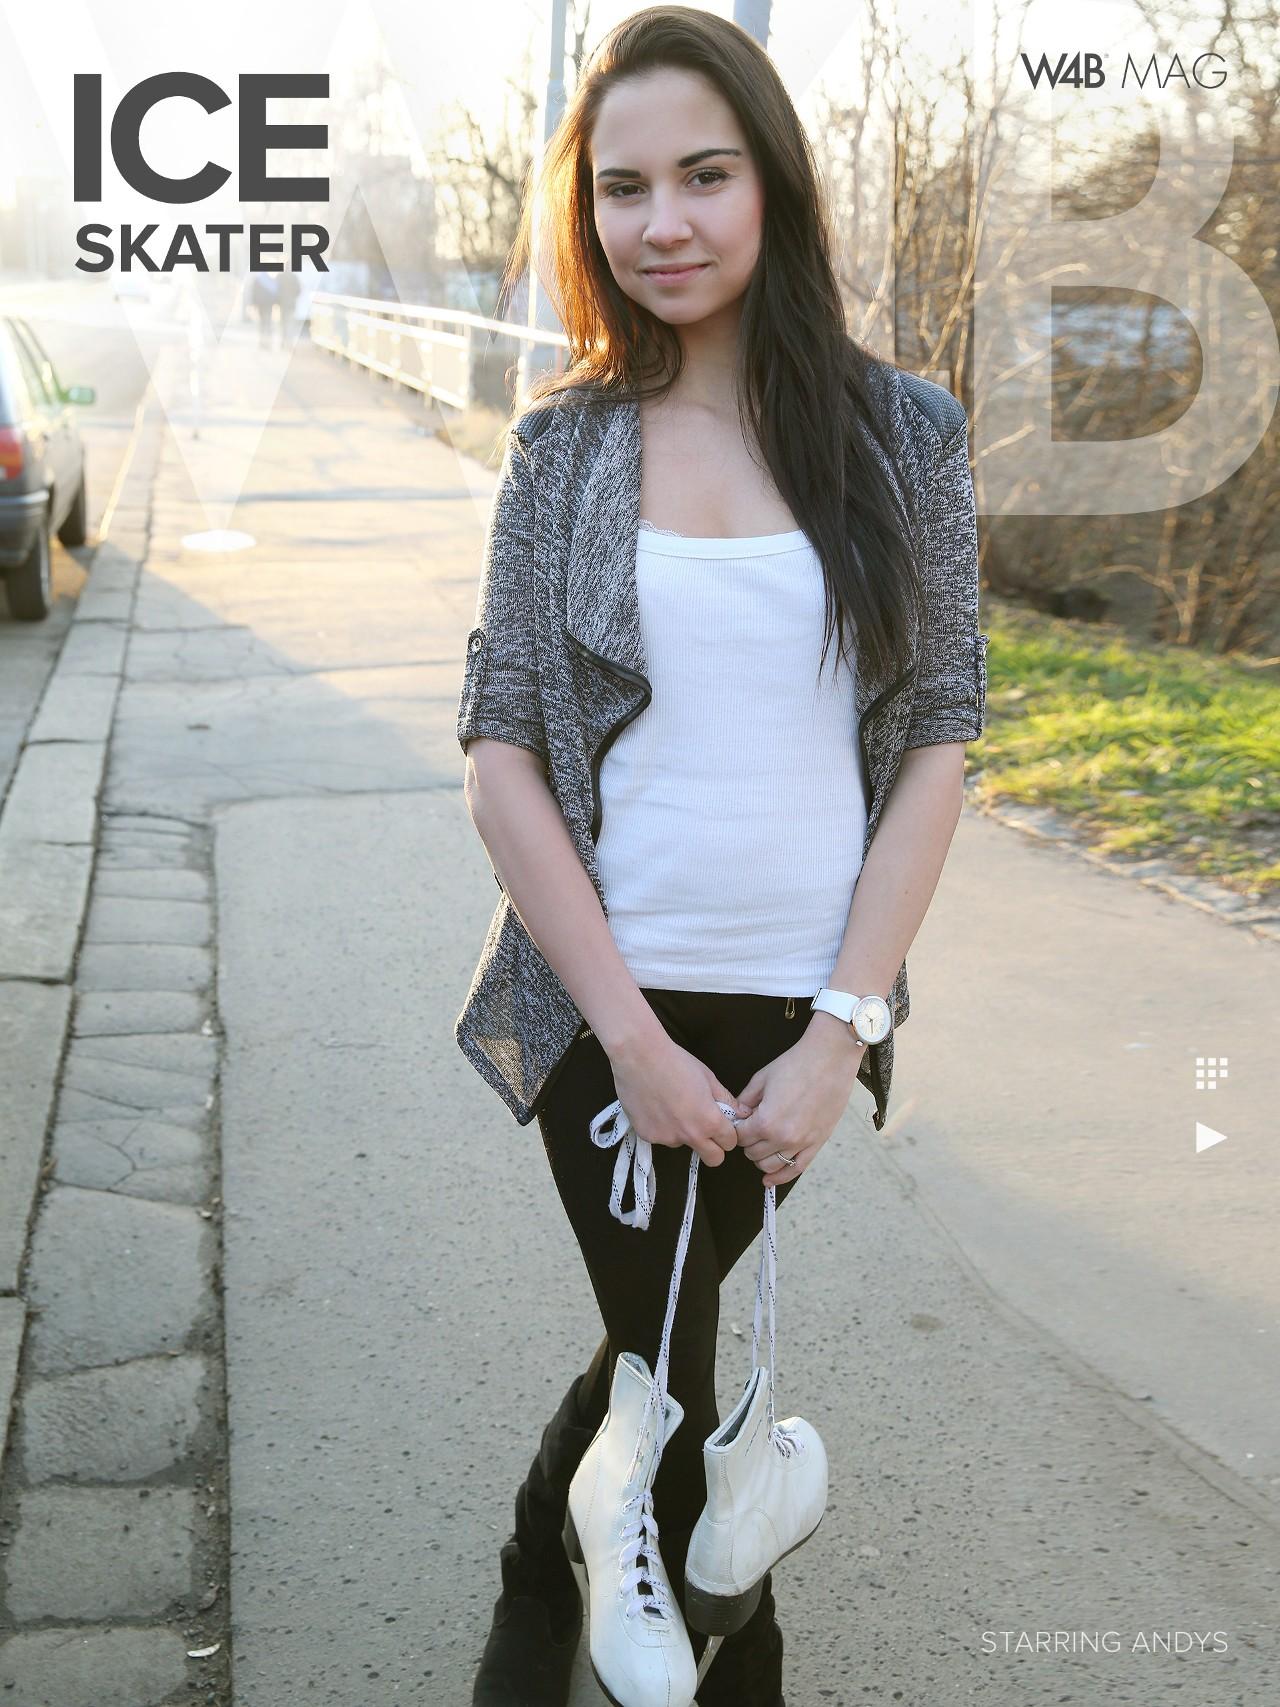 Andys: Ice Skater